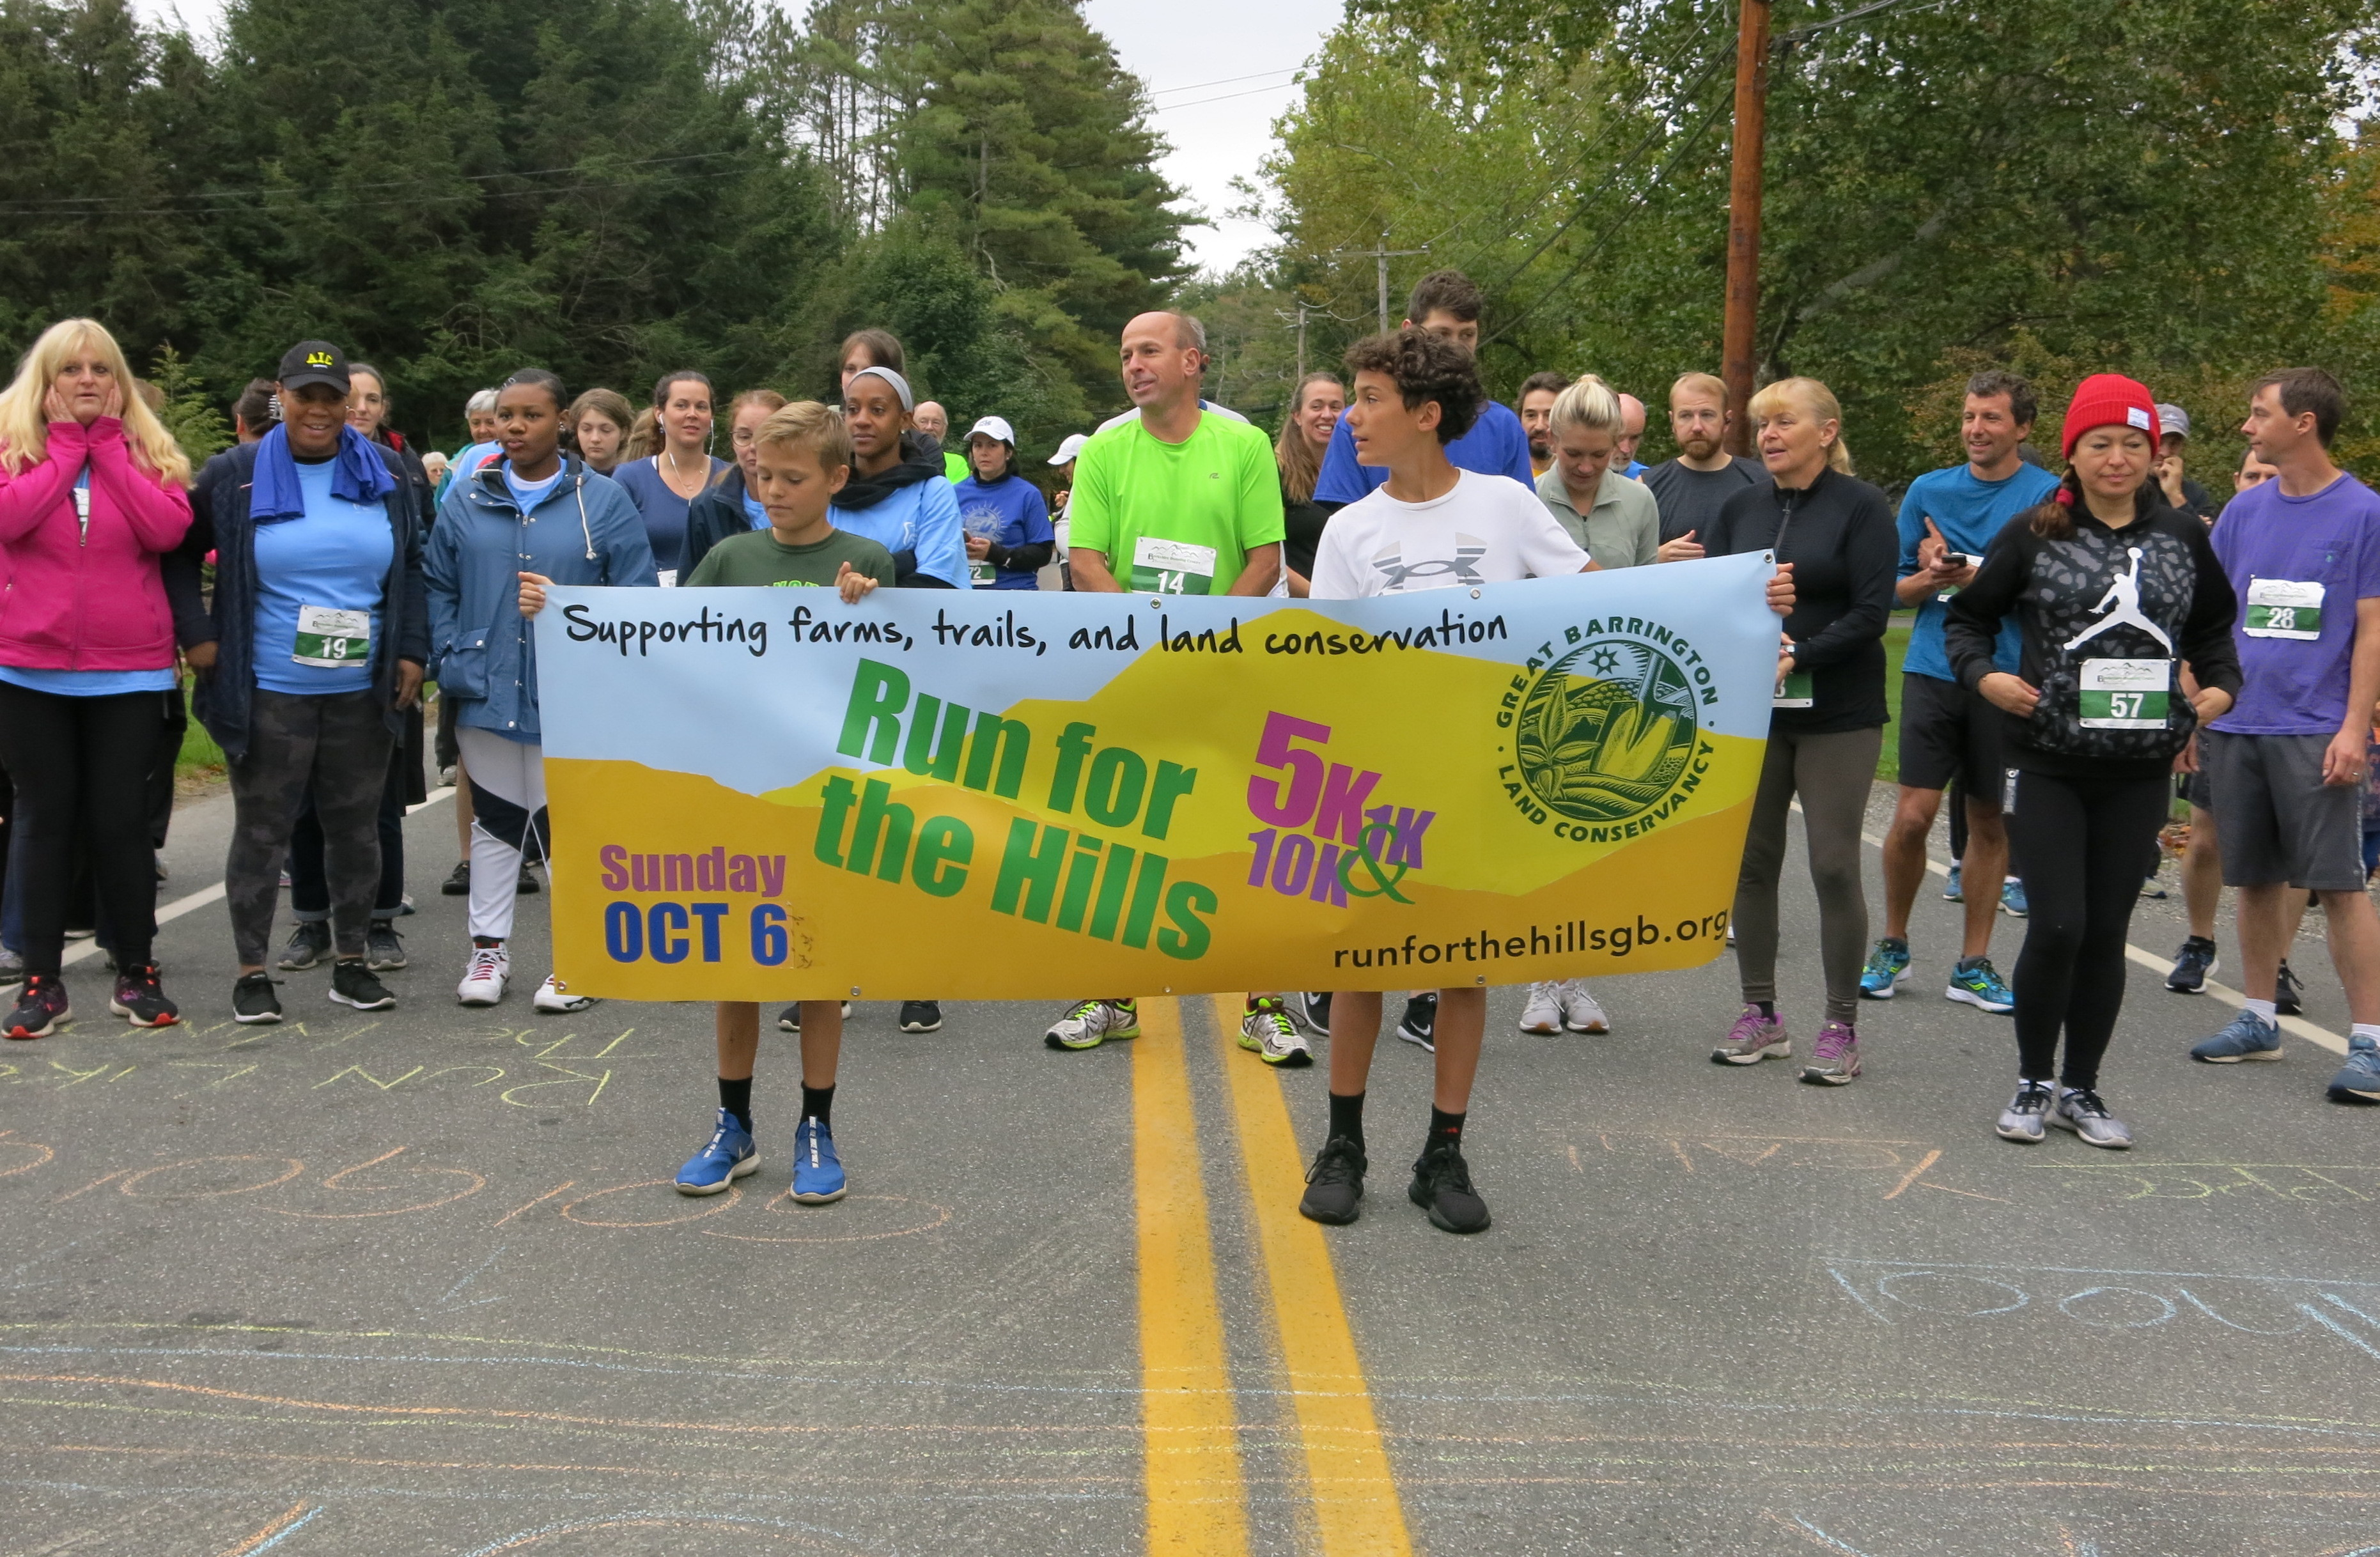 2019 Run for the Hills 5K starting line (photo by T. Mack)